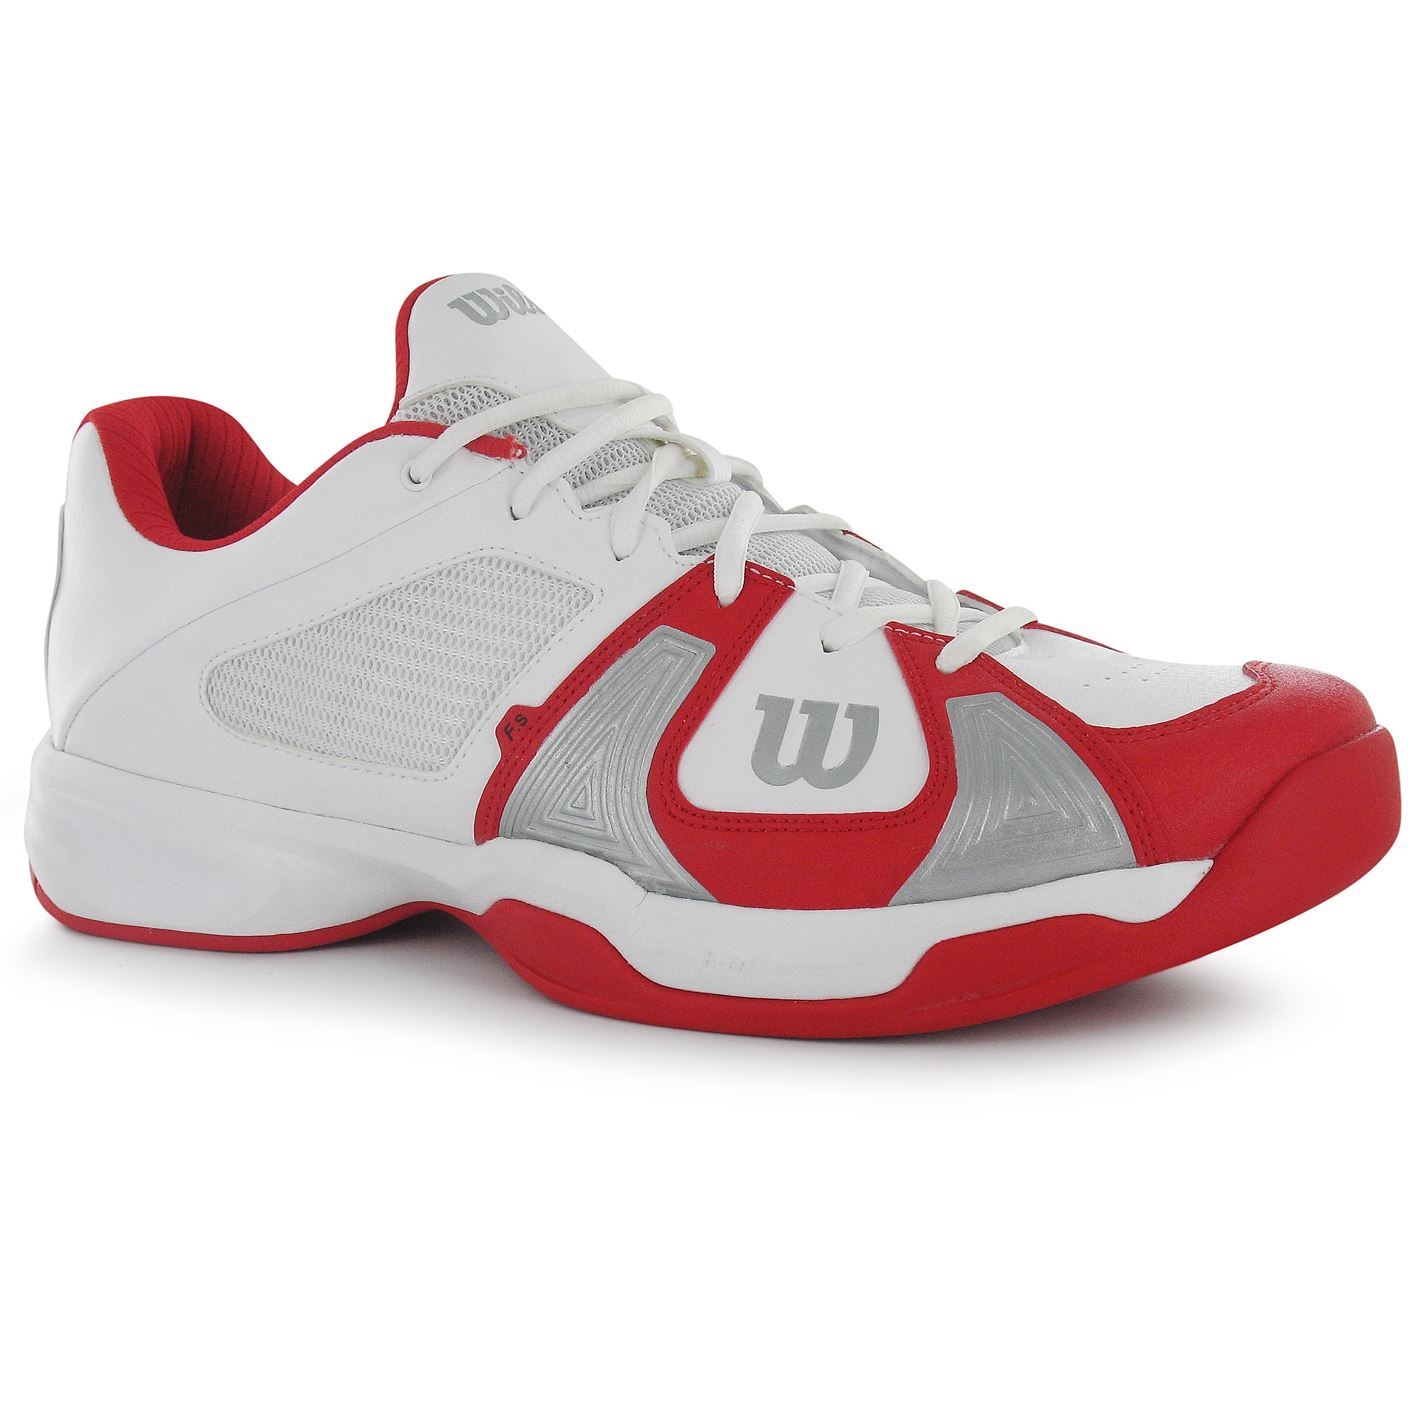 wilson mens open tennis shoes cushioned insole lace